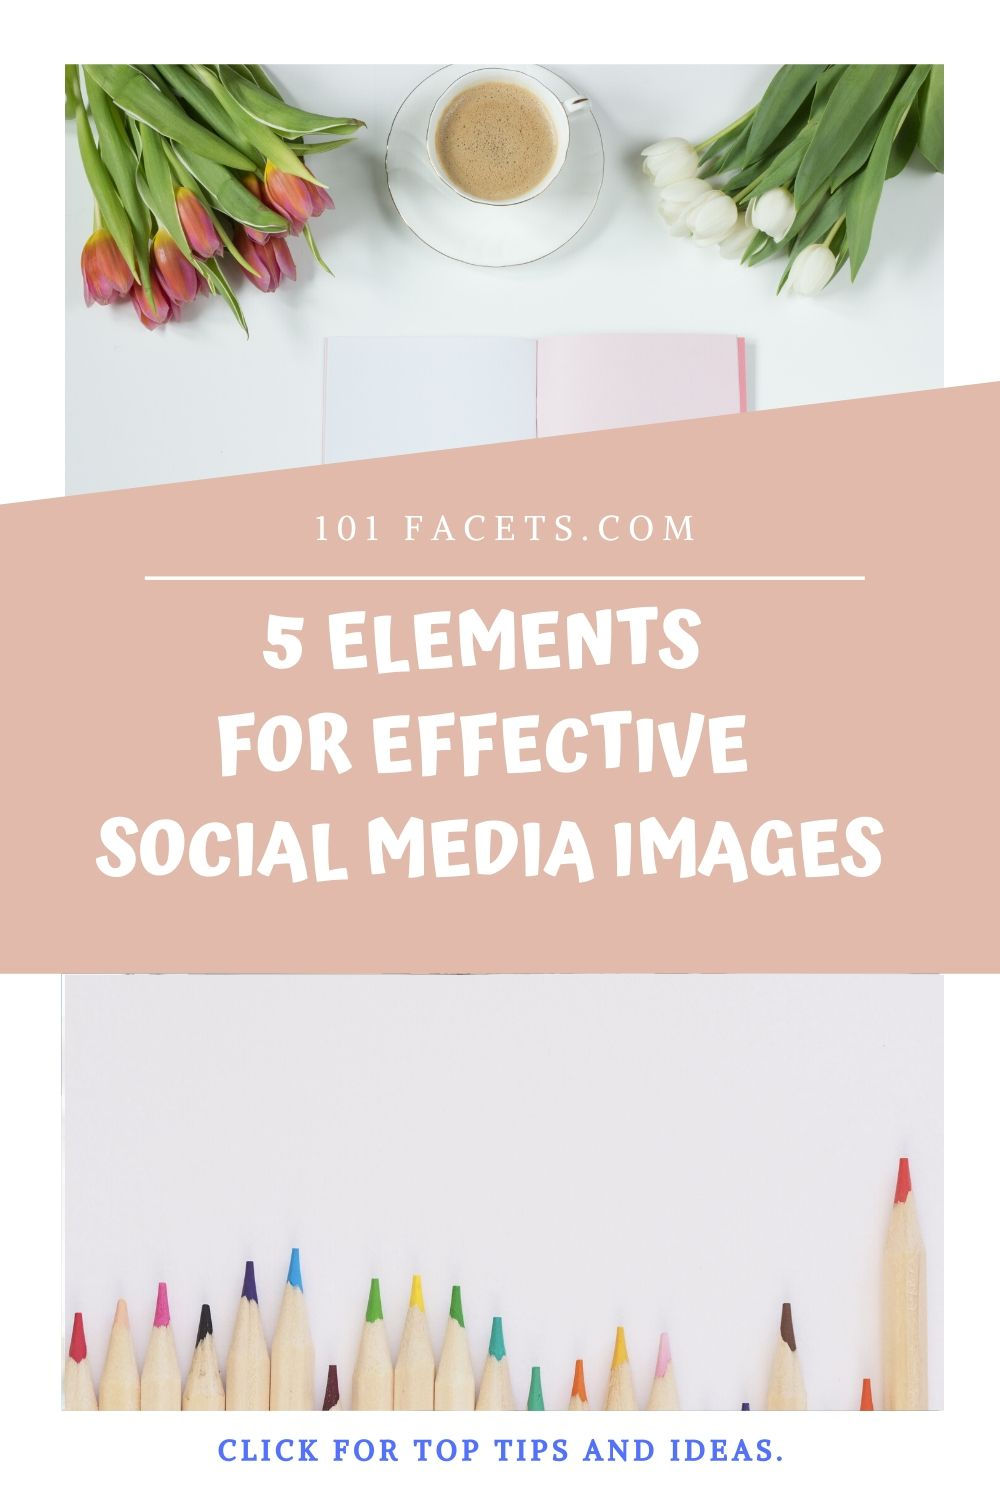 5 Elements for Effective Social Media Images